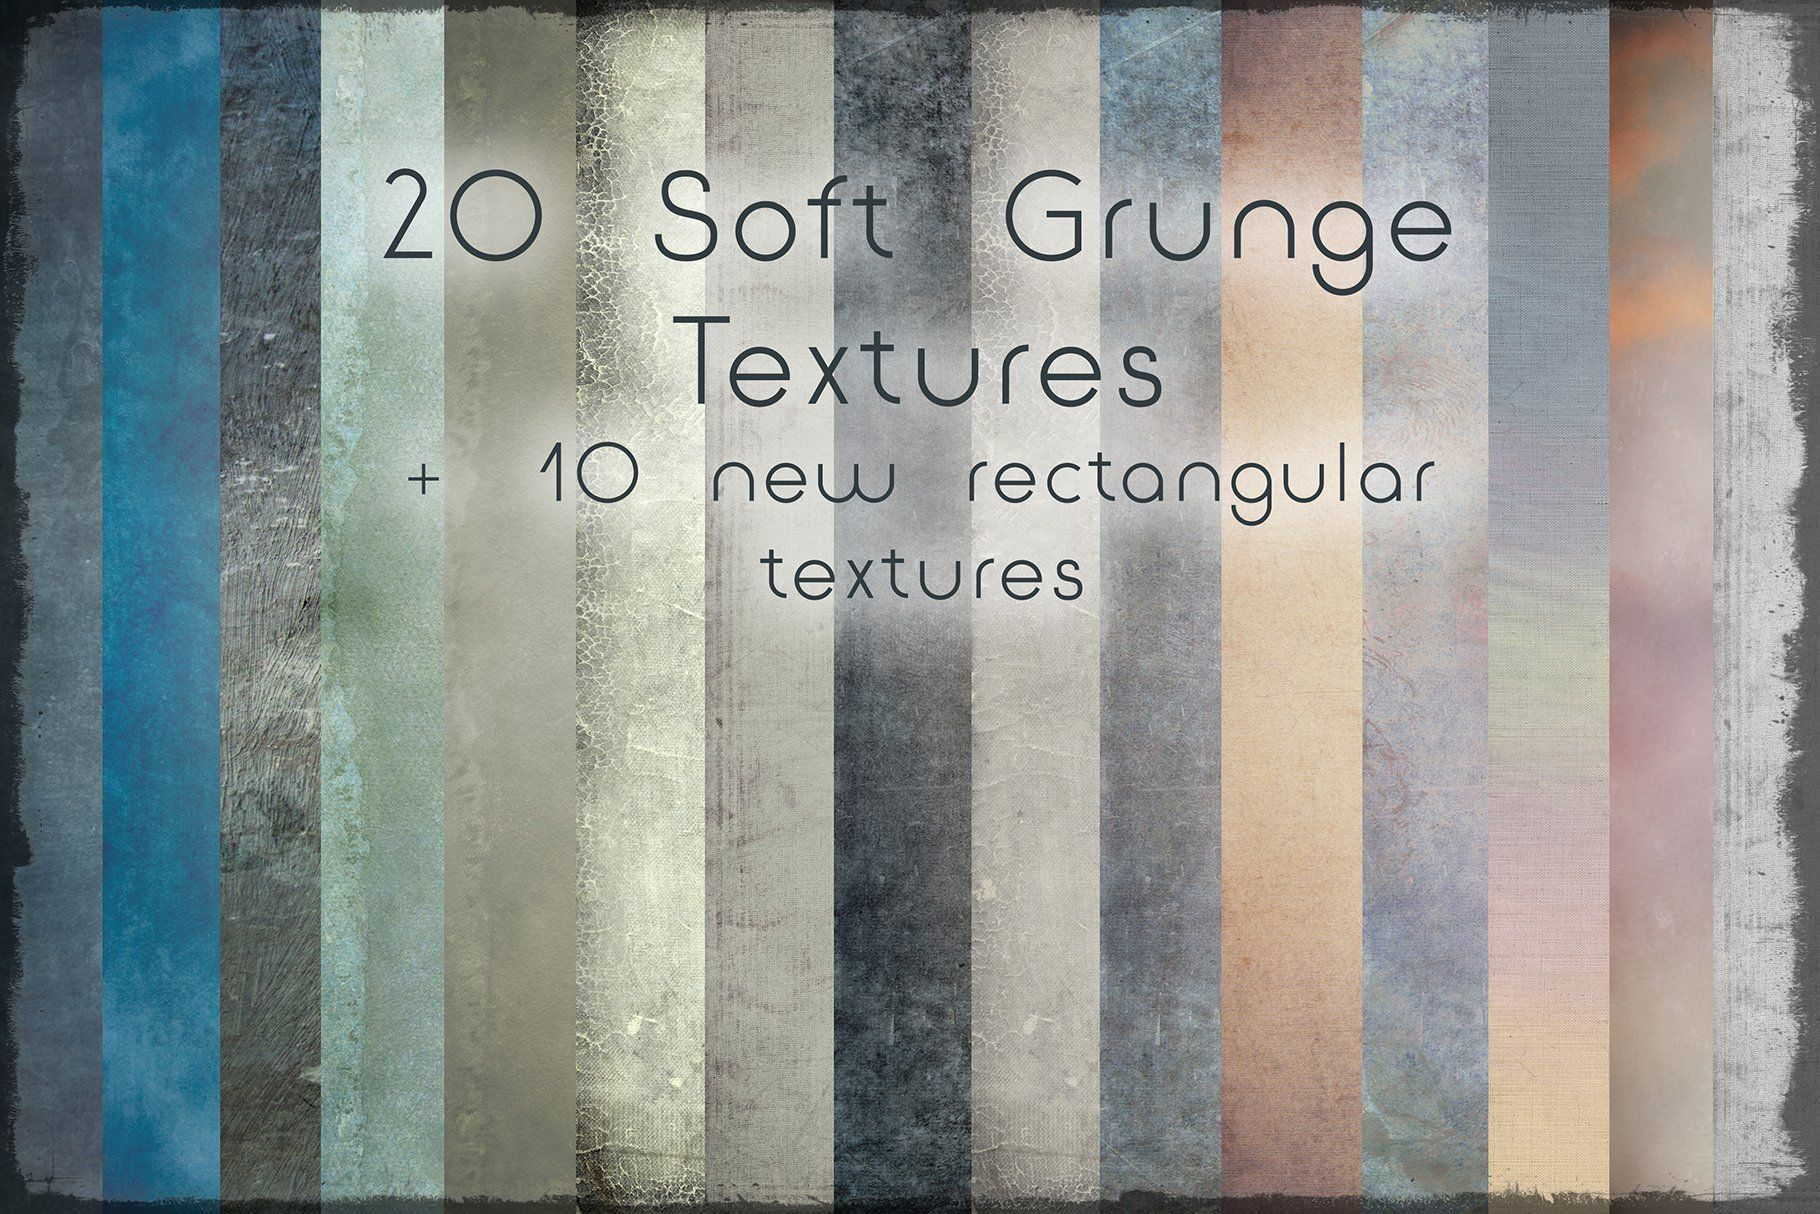 Free High Resolution Textures Lost And Taken 25 Subtle And Light Grunge Textures Grunge Textures Textured Background Texture Art